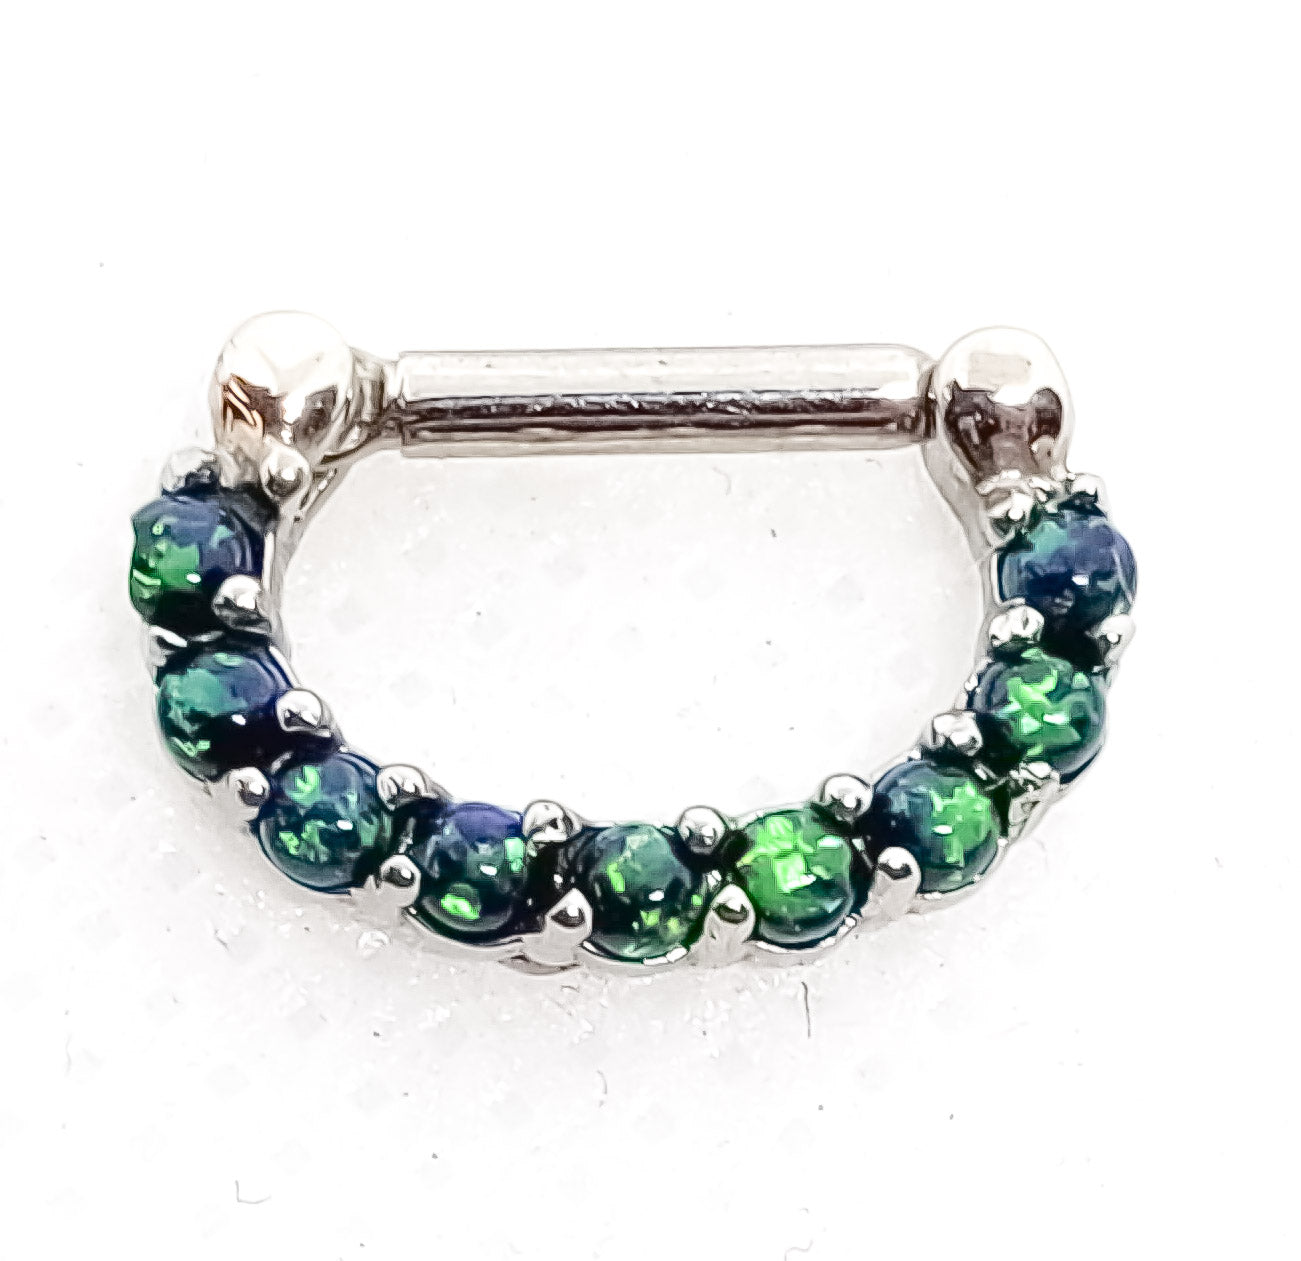 14 Gauge Septum Clicker With Green Opals